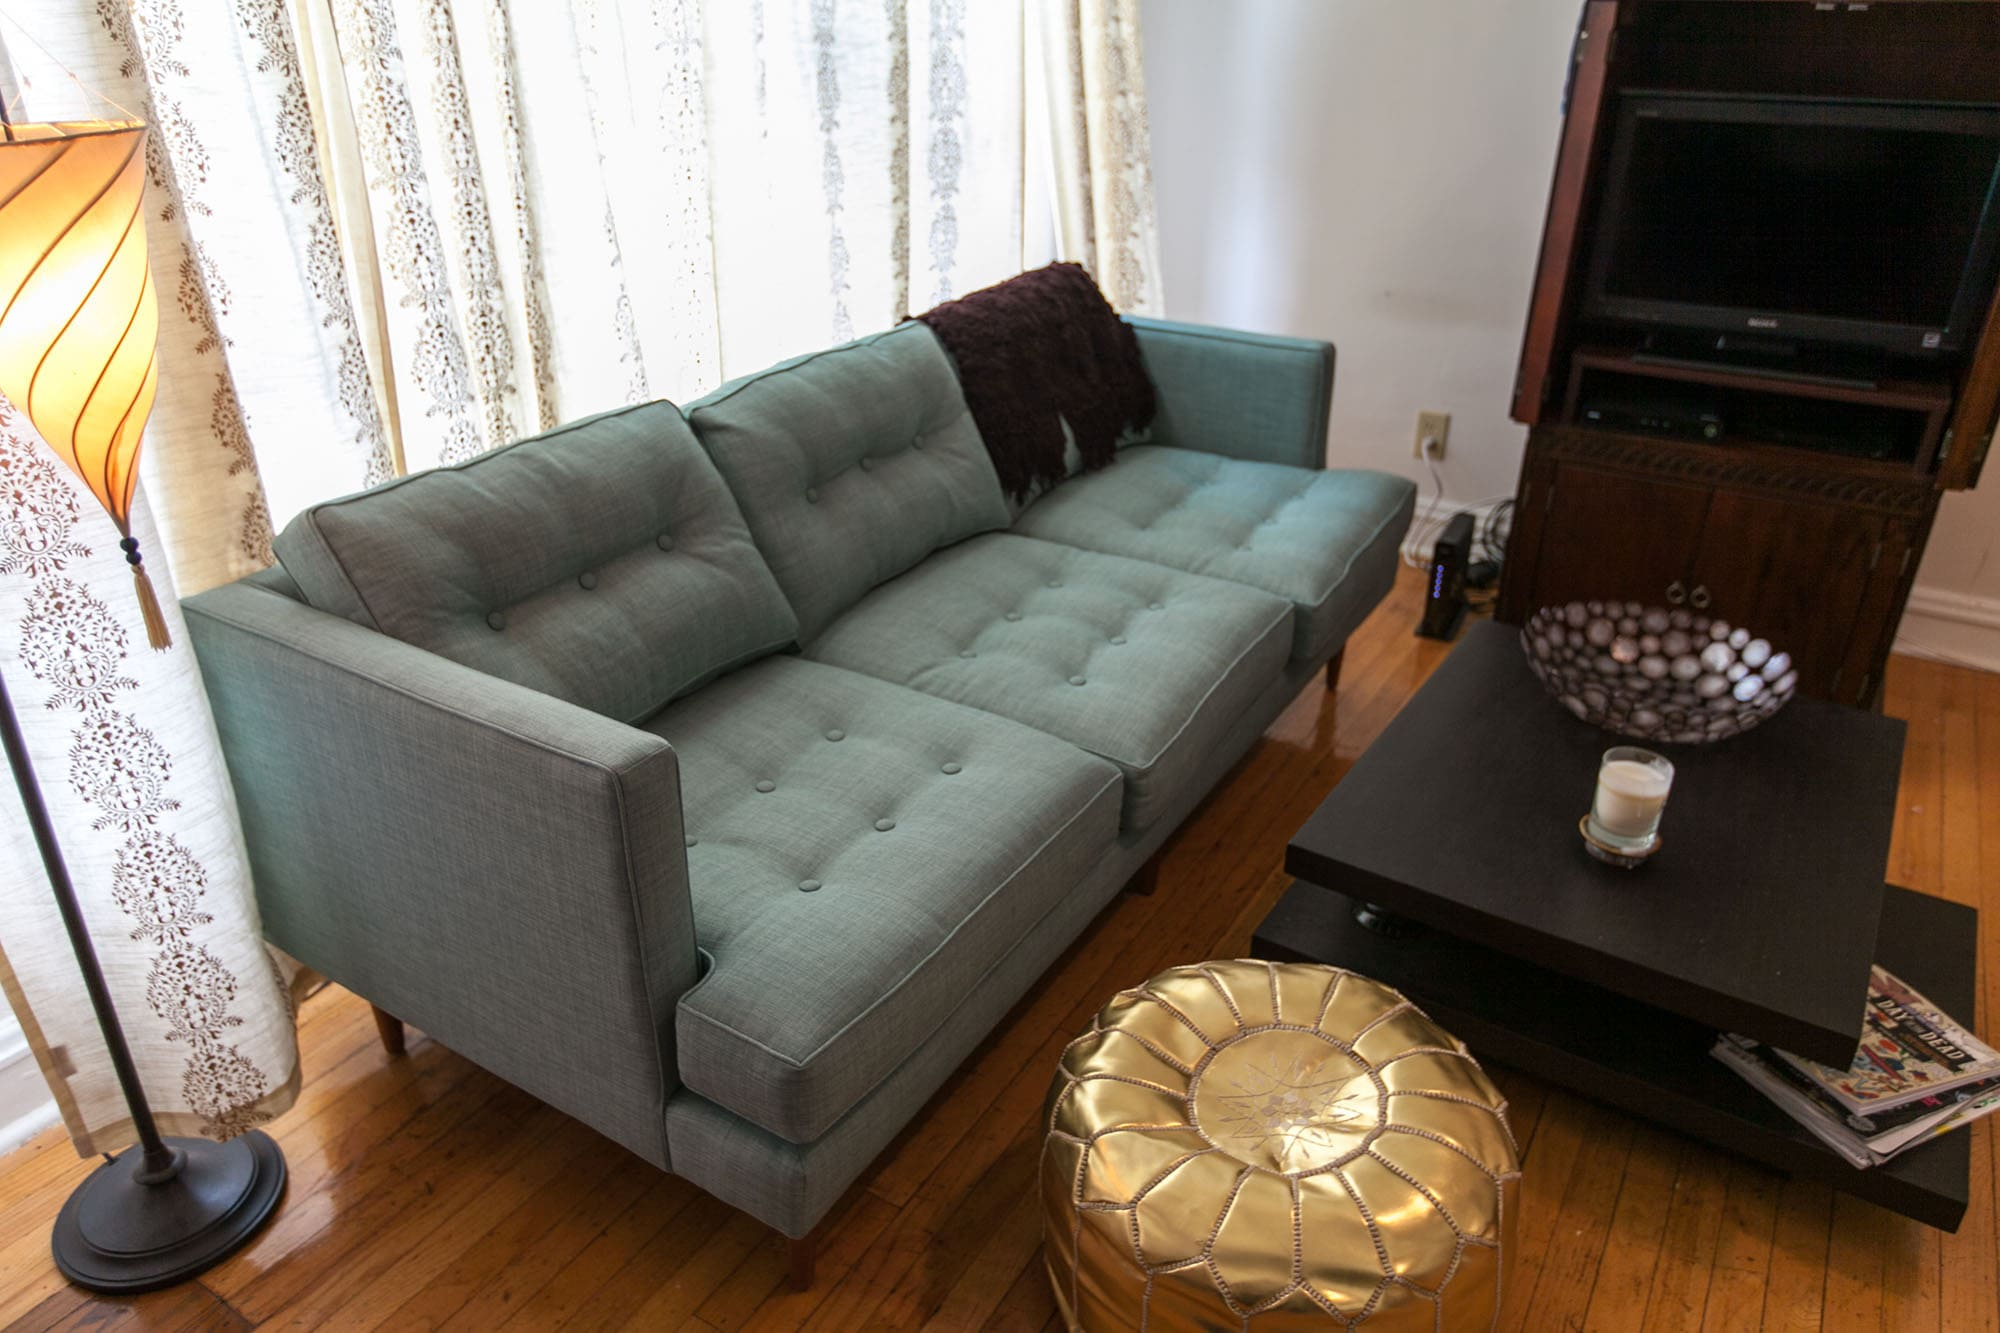 An Ocean-Blue Couch: My Living Room So Far - West Elm Peggy Sofa in Eucalyptus